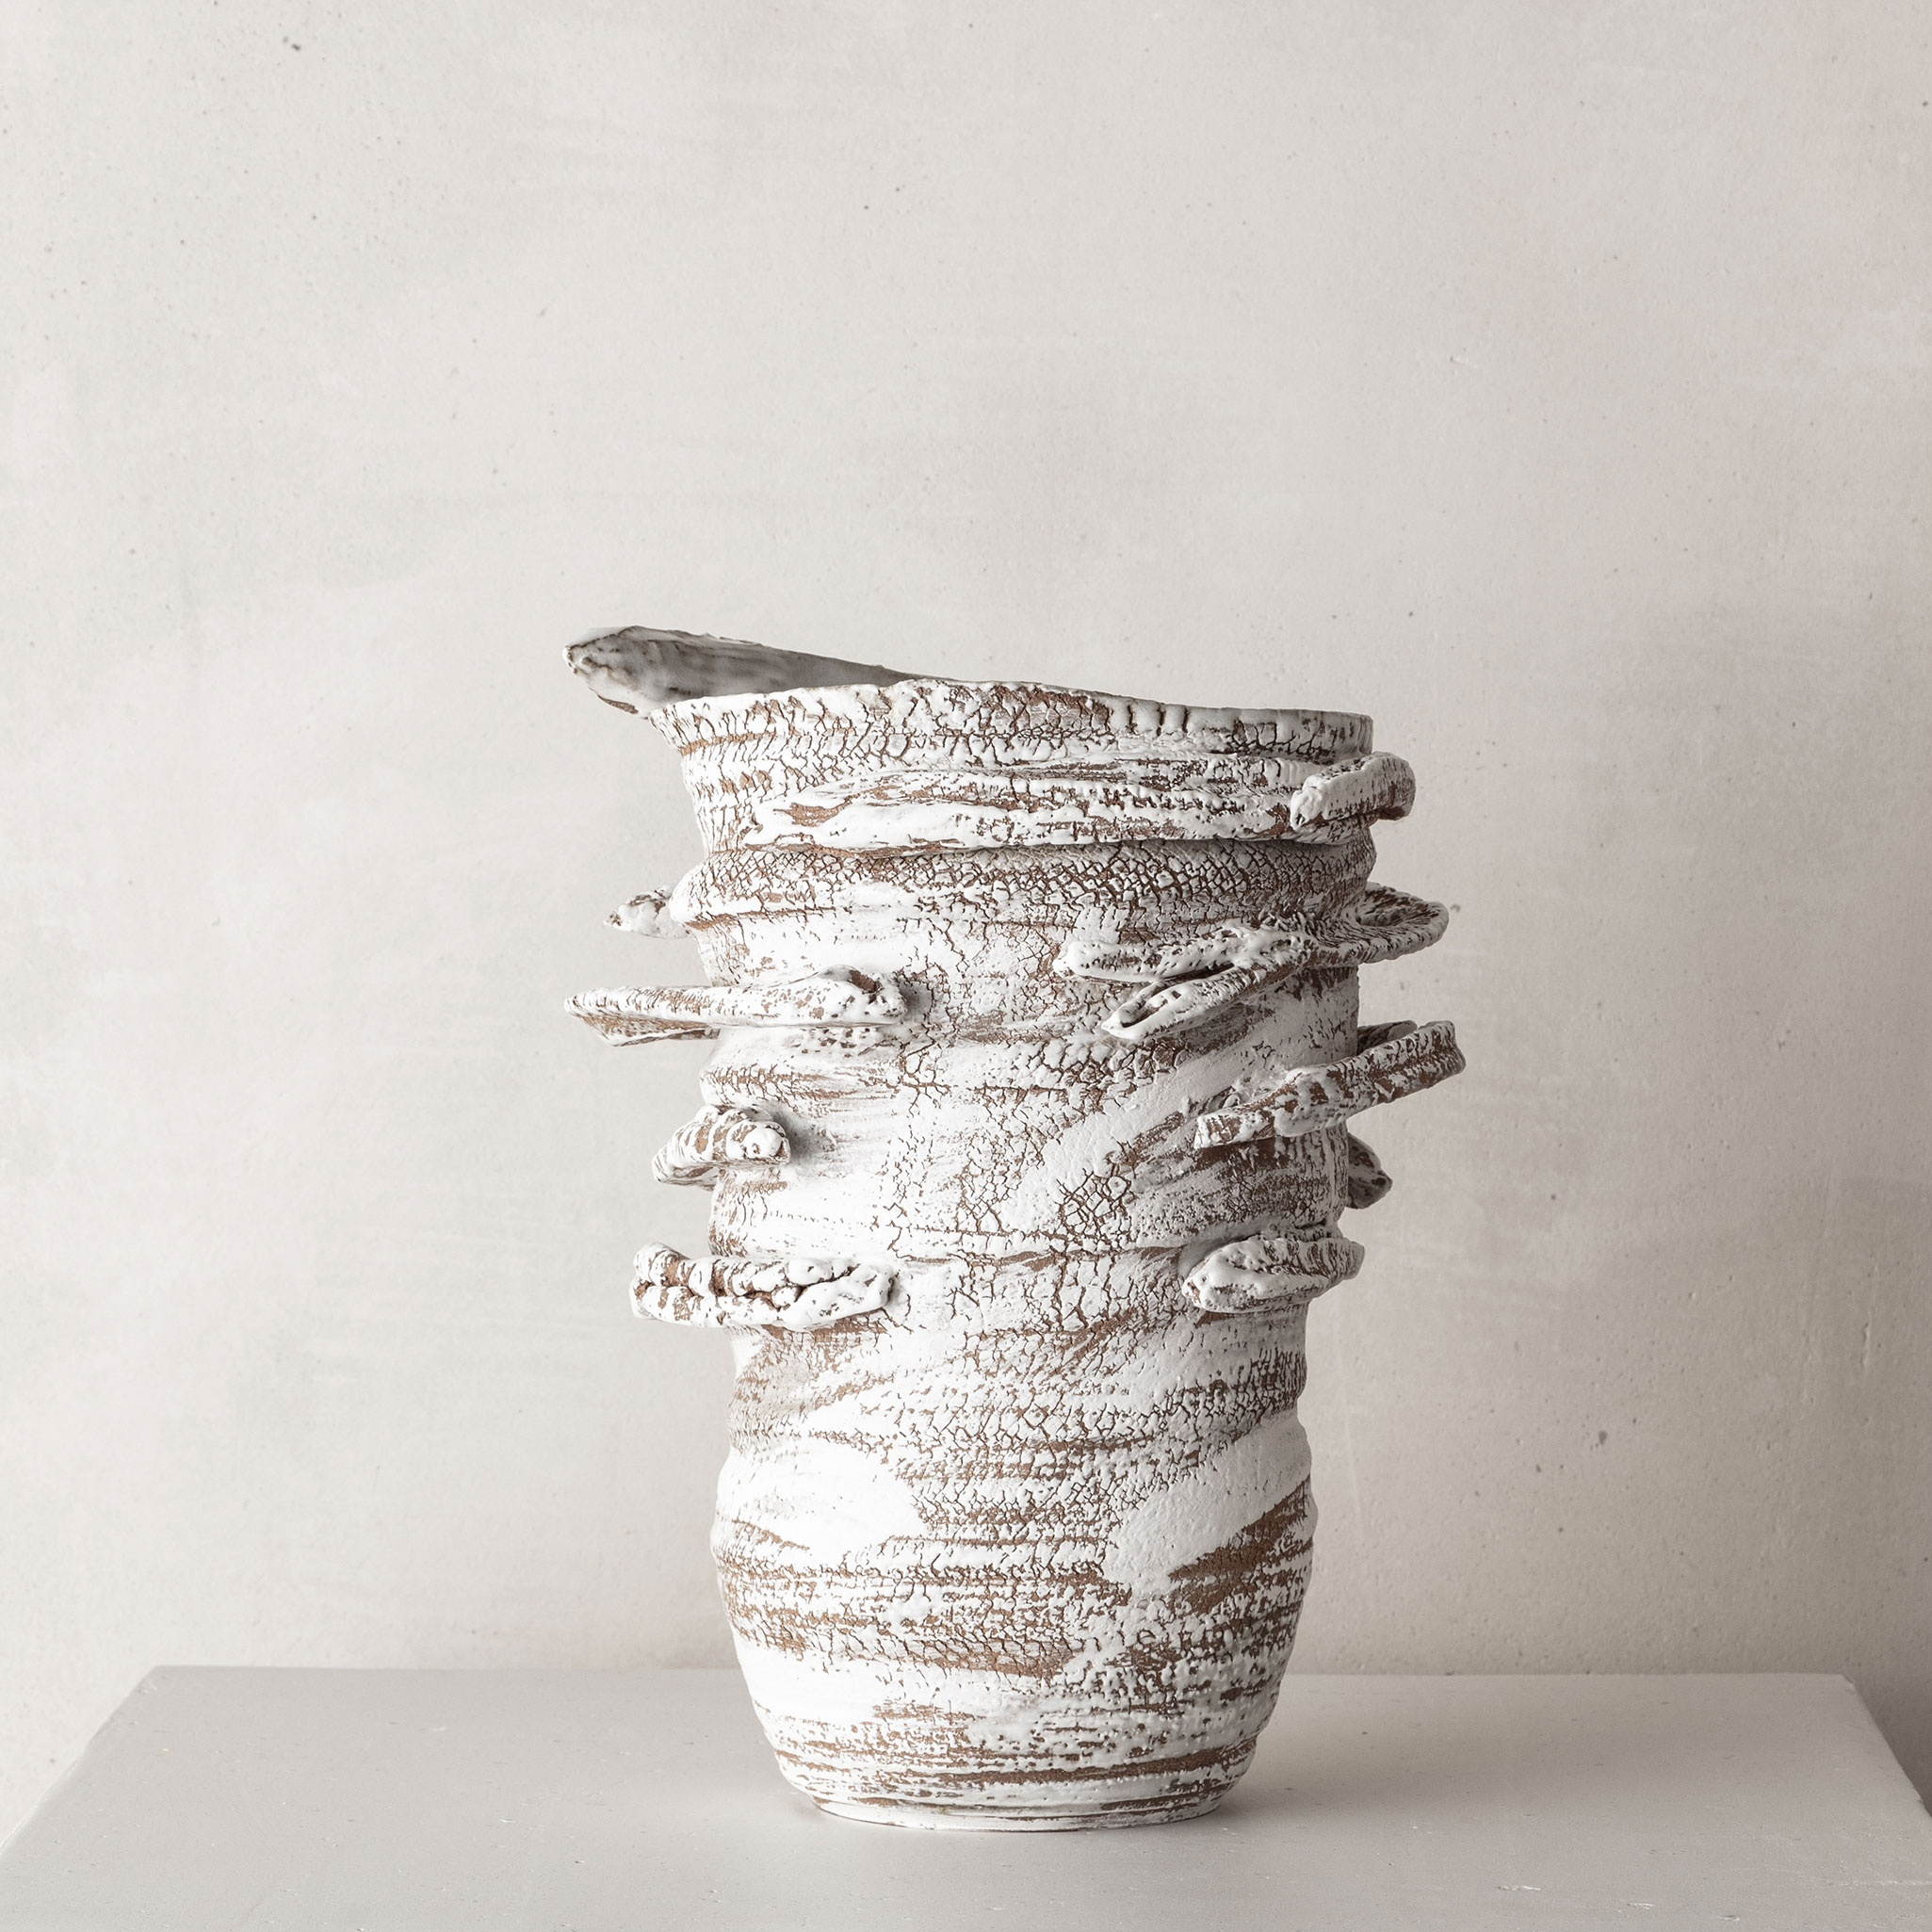 CHTHONIC VESSEL 01Peter Speliopoulos, Peter Speliopoulos Ceramics, Peter Speliopoulos Artist, Peter Speliopoulos Fashion Designer, Contemporary Ceramics, Contemporary Greek Ceramics, Interior Design Accessories.